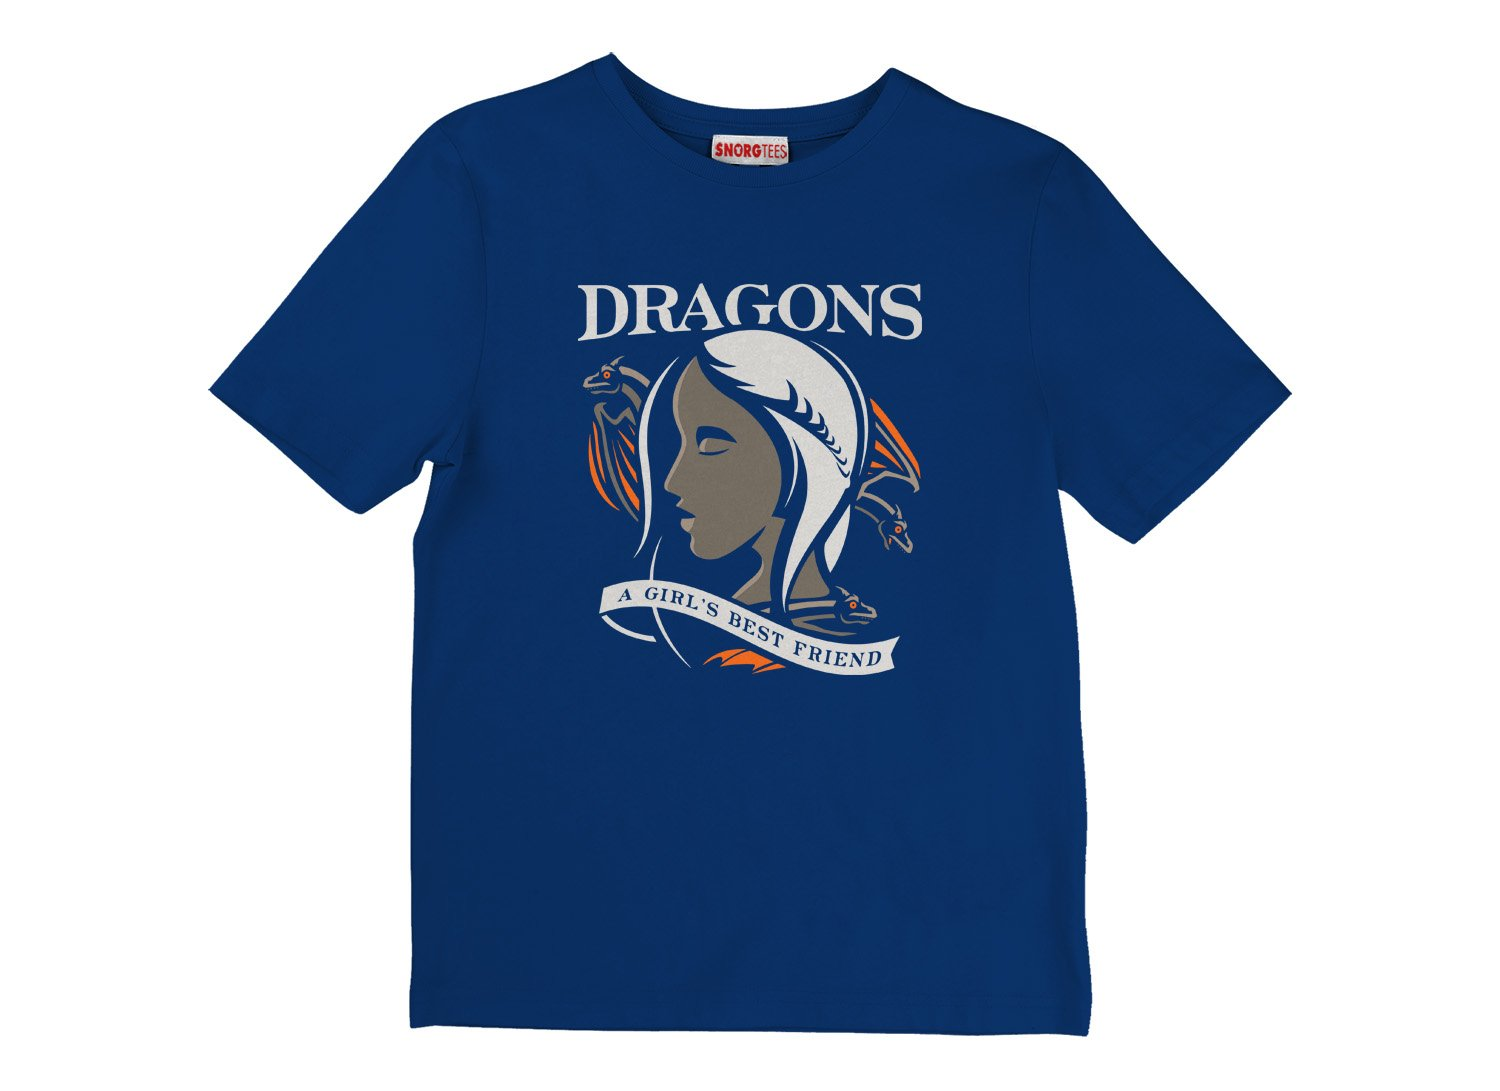 Dragons Are A Girl's Best Friend on Kids T-Shirt